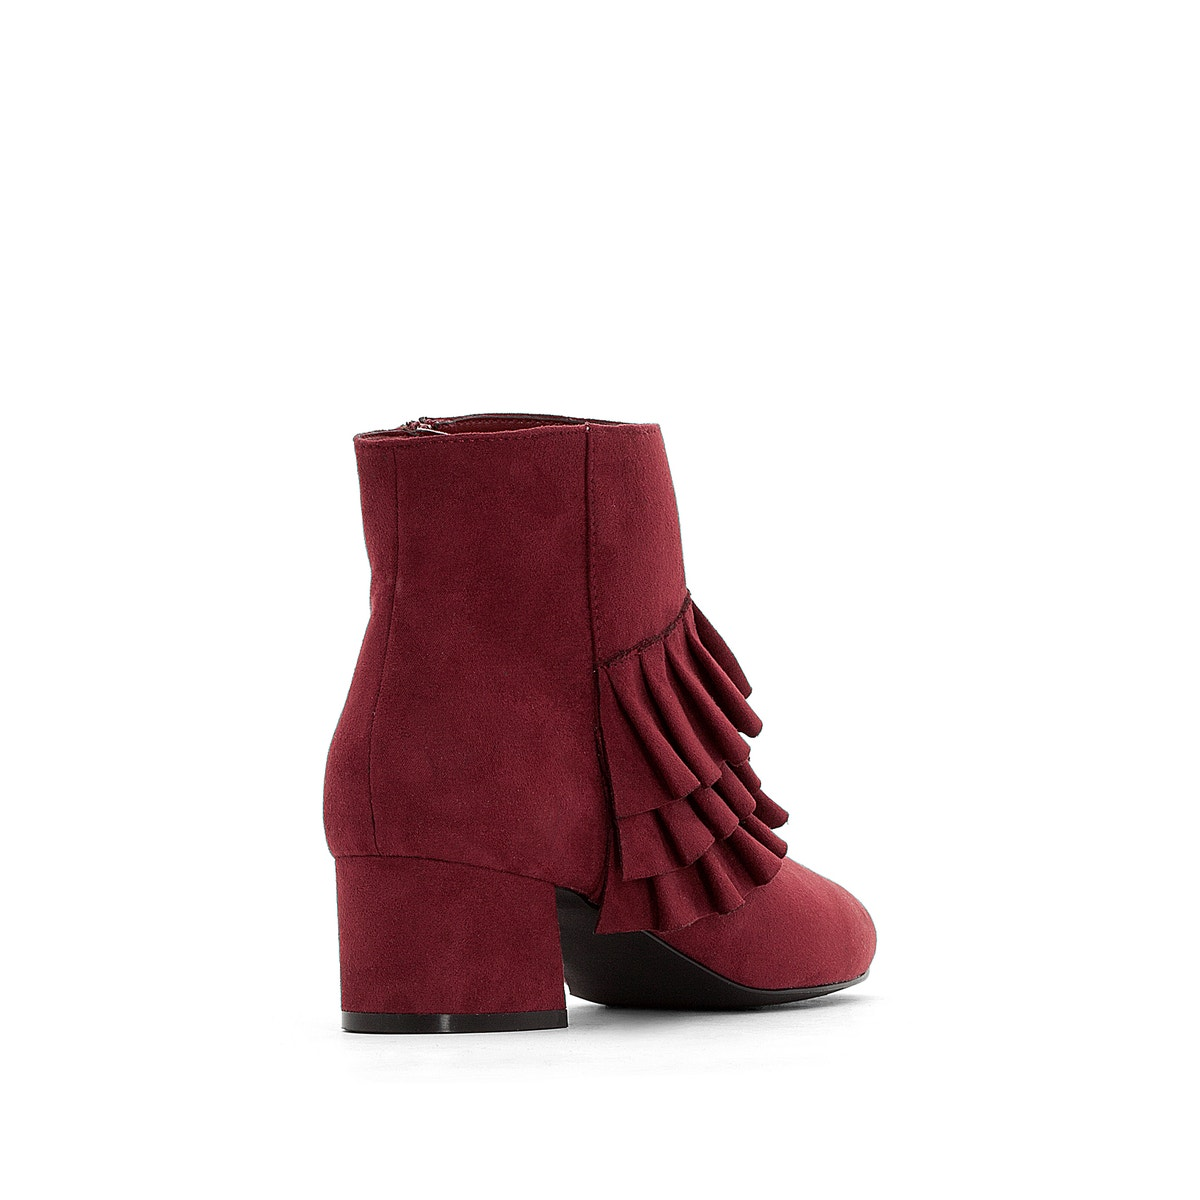 La rotoute Collections damen Fringed Ankle Ankle Ankle Stiefel 192376